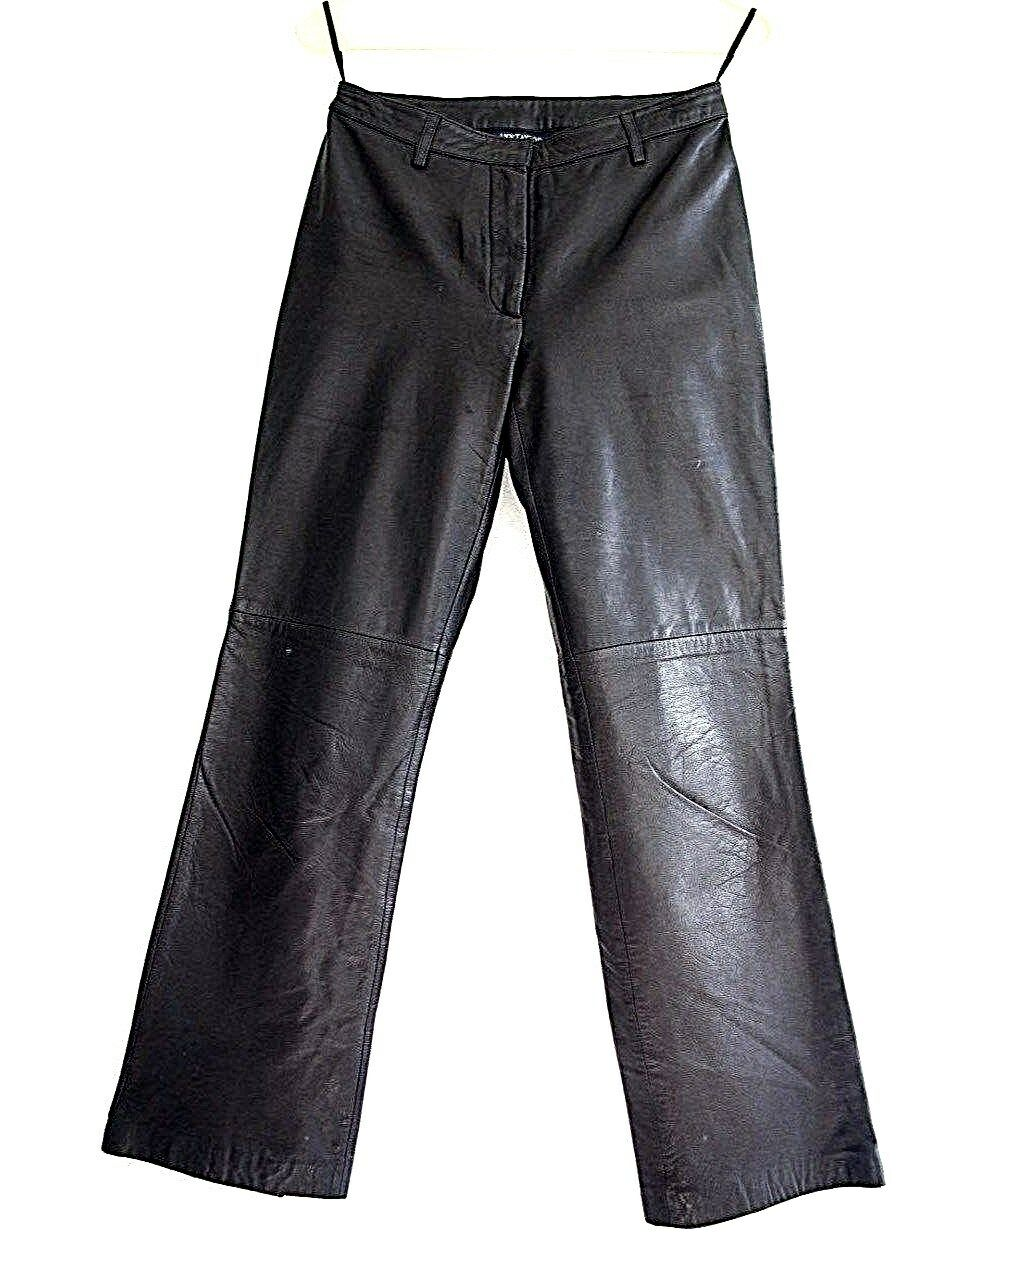 Ann Taylor genuine Leather Pants Size 2 Petite